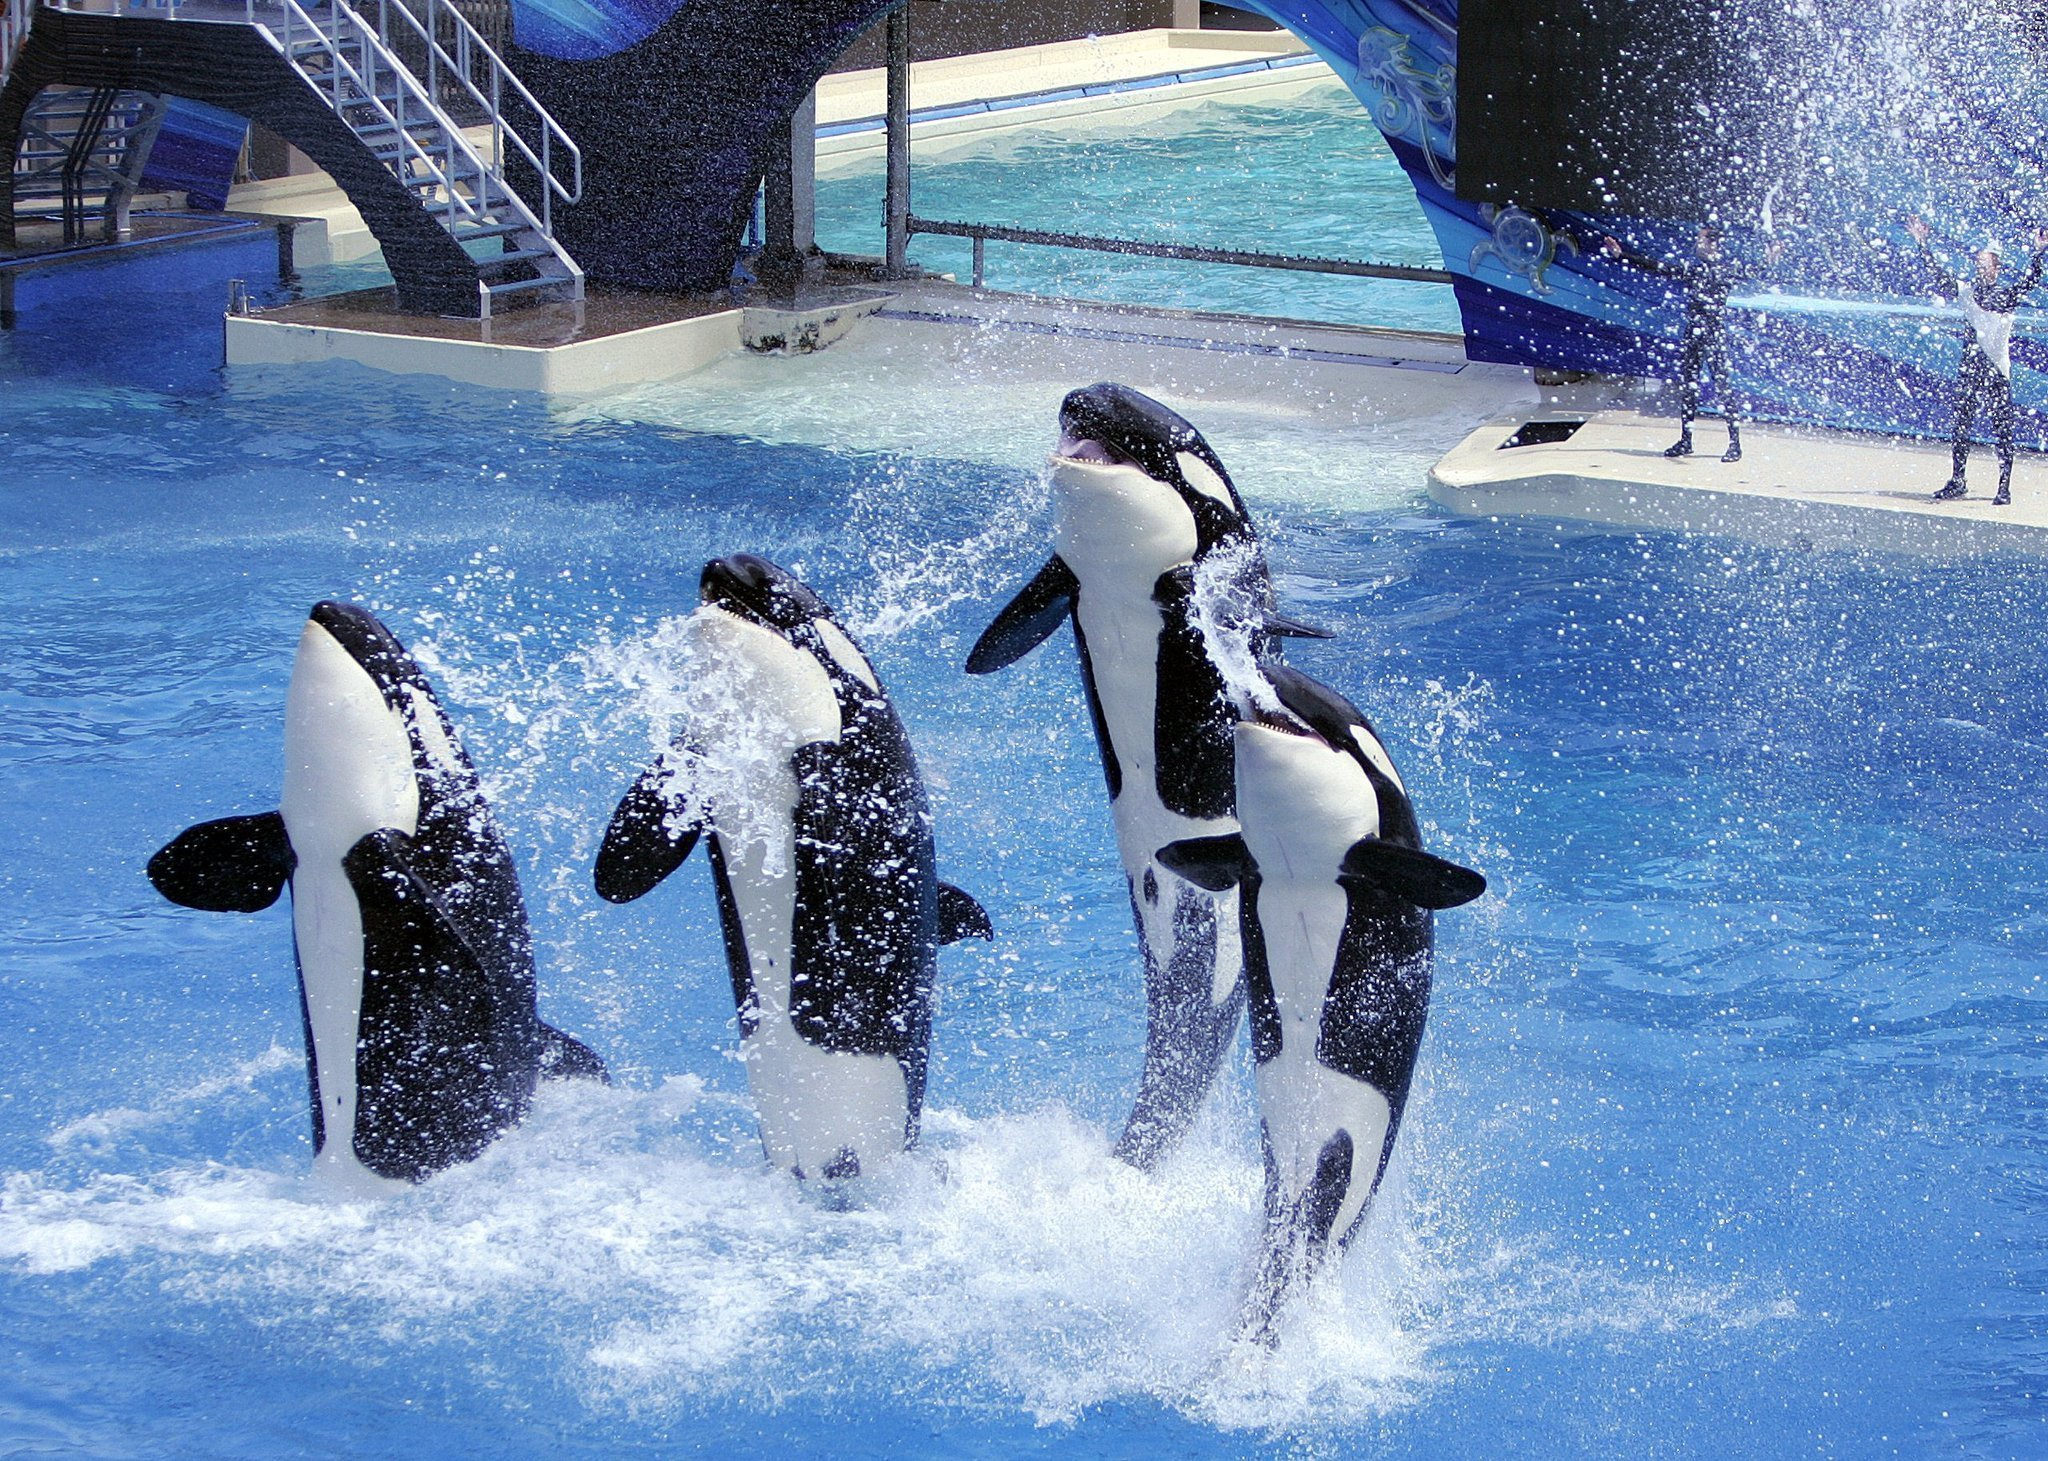 bill would ban seaworld orca shows - the san diego union-tribune